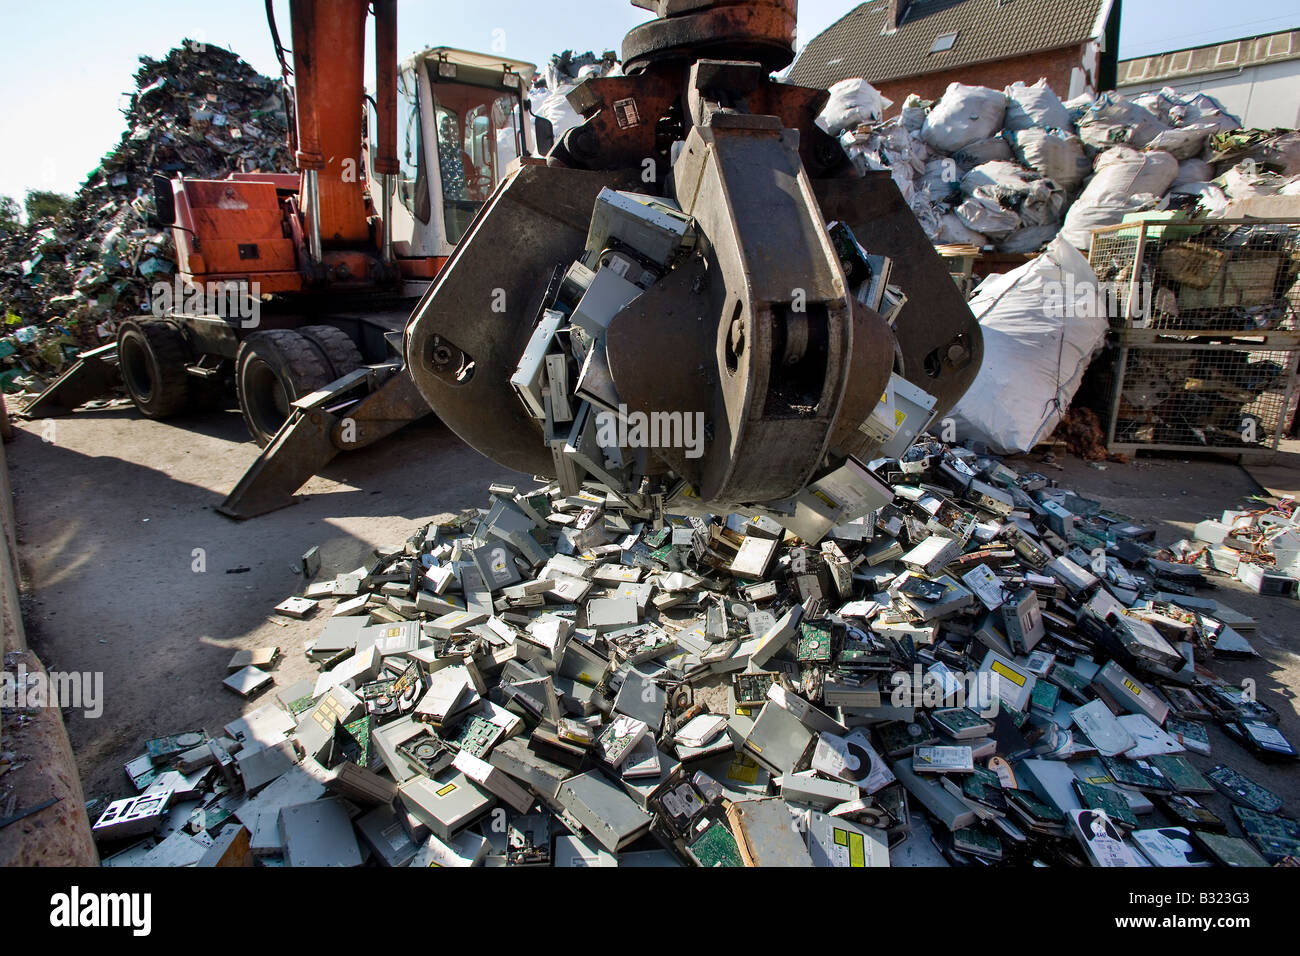 Computer Scrap Stock Photos Images Alamy It Hard Drive Recycling Circuit Board Old Harddrives On A Depot Image